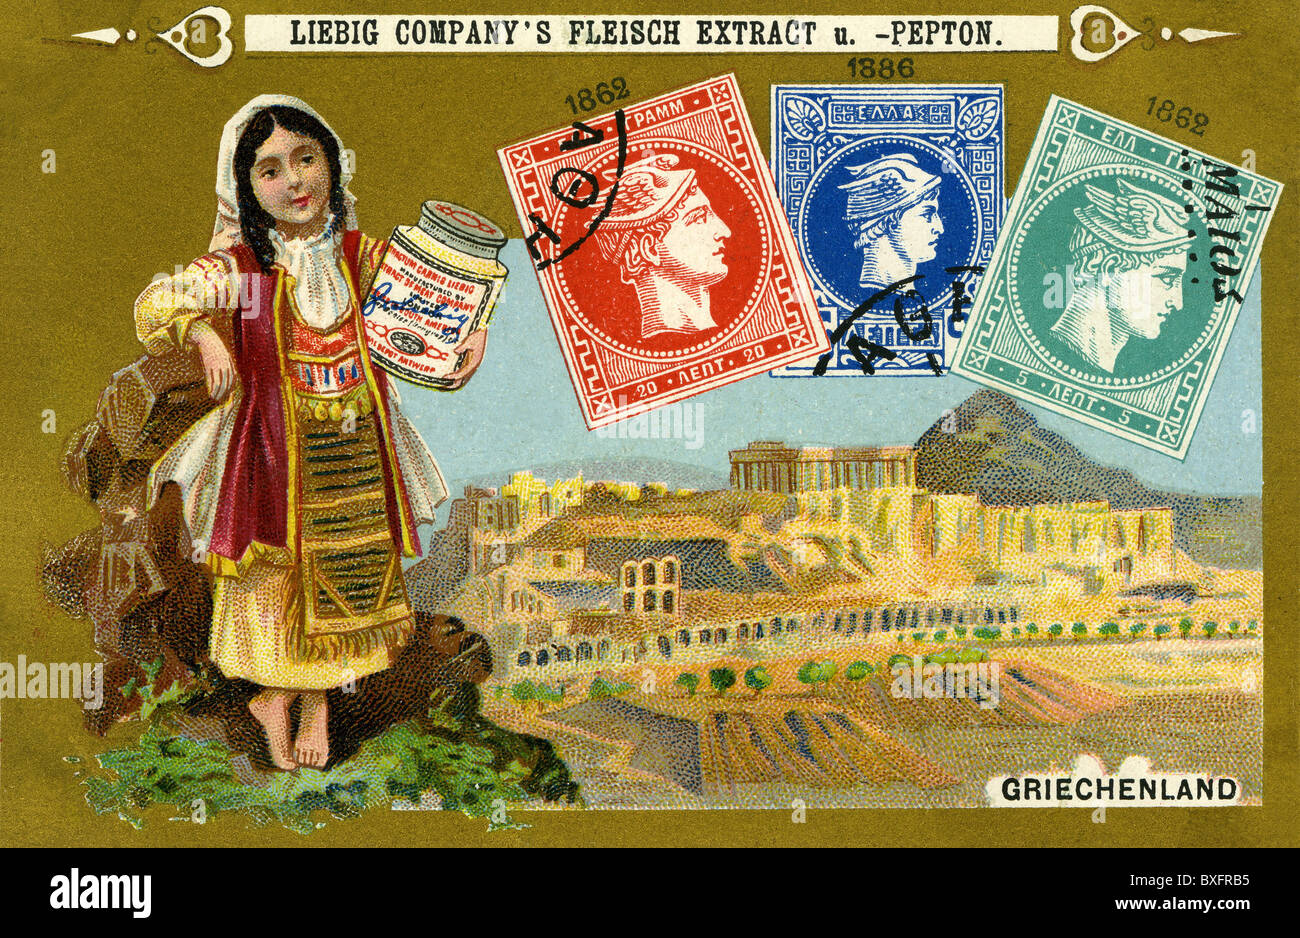 mail / post, postage stamps, Greek postage stamps, 1862, 1886, Liebig collection card, Germany, circa 1898, 1890s, - Stock Image